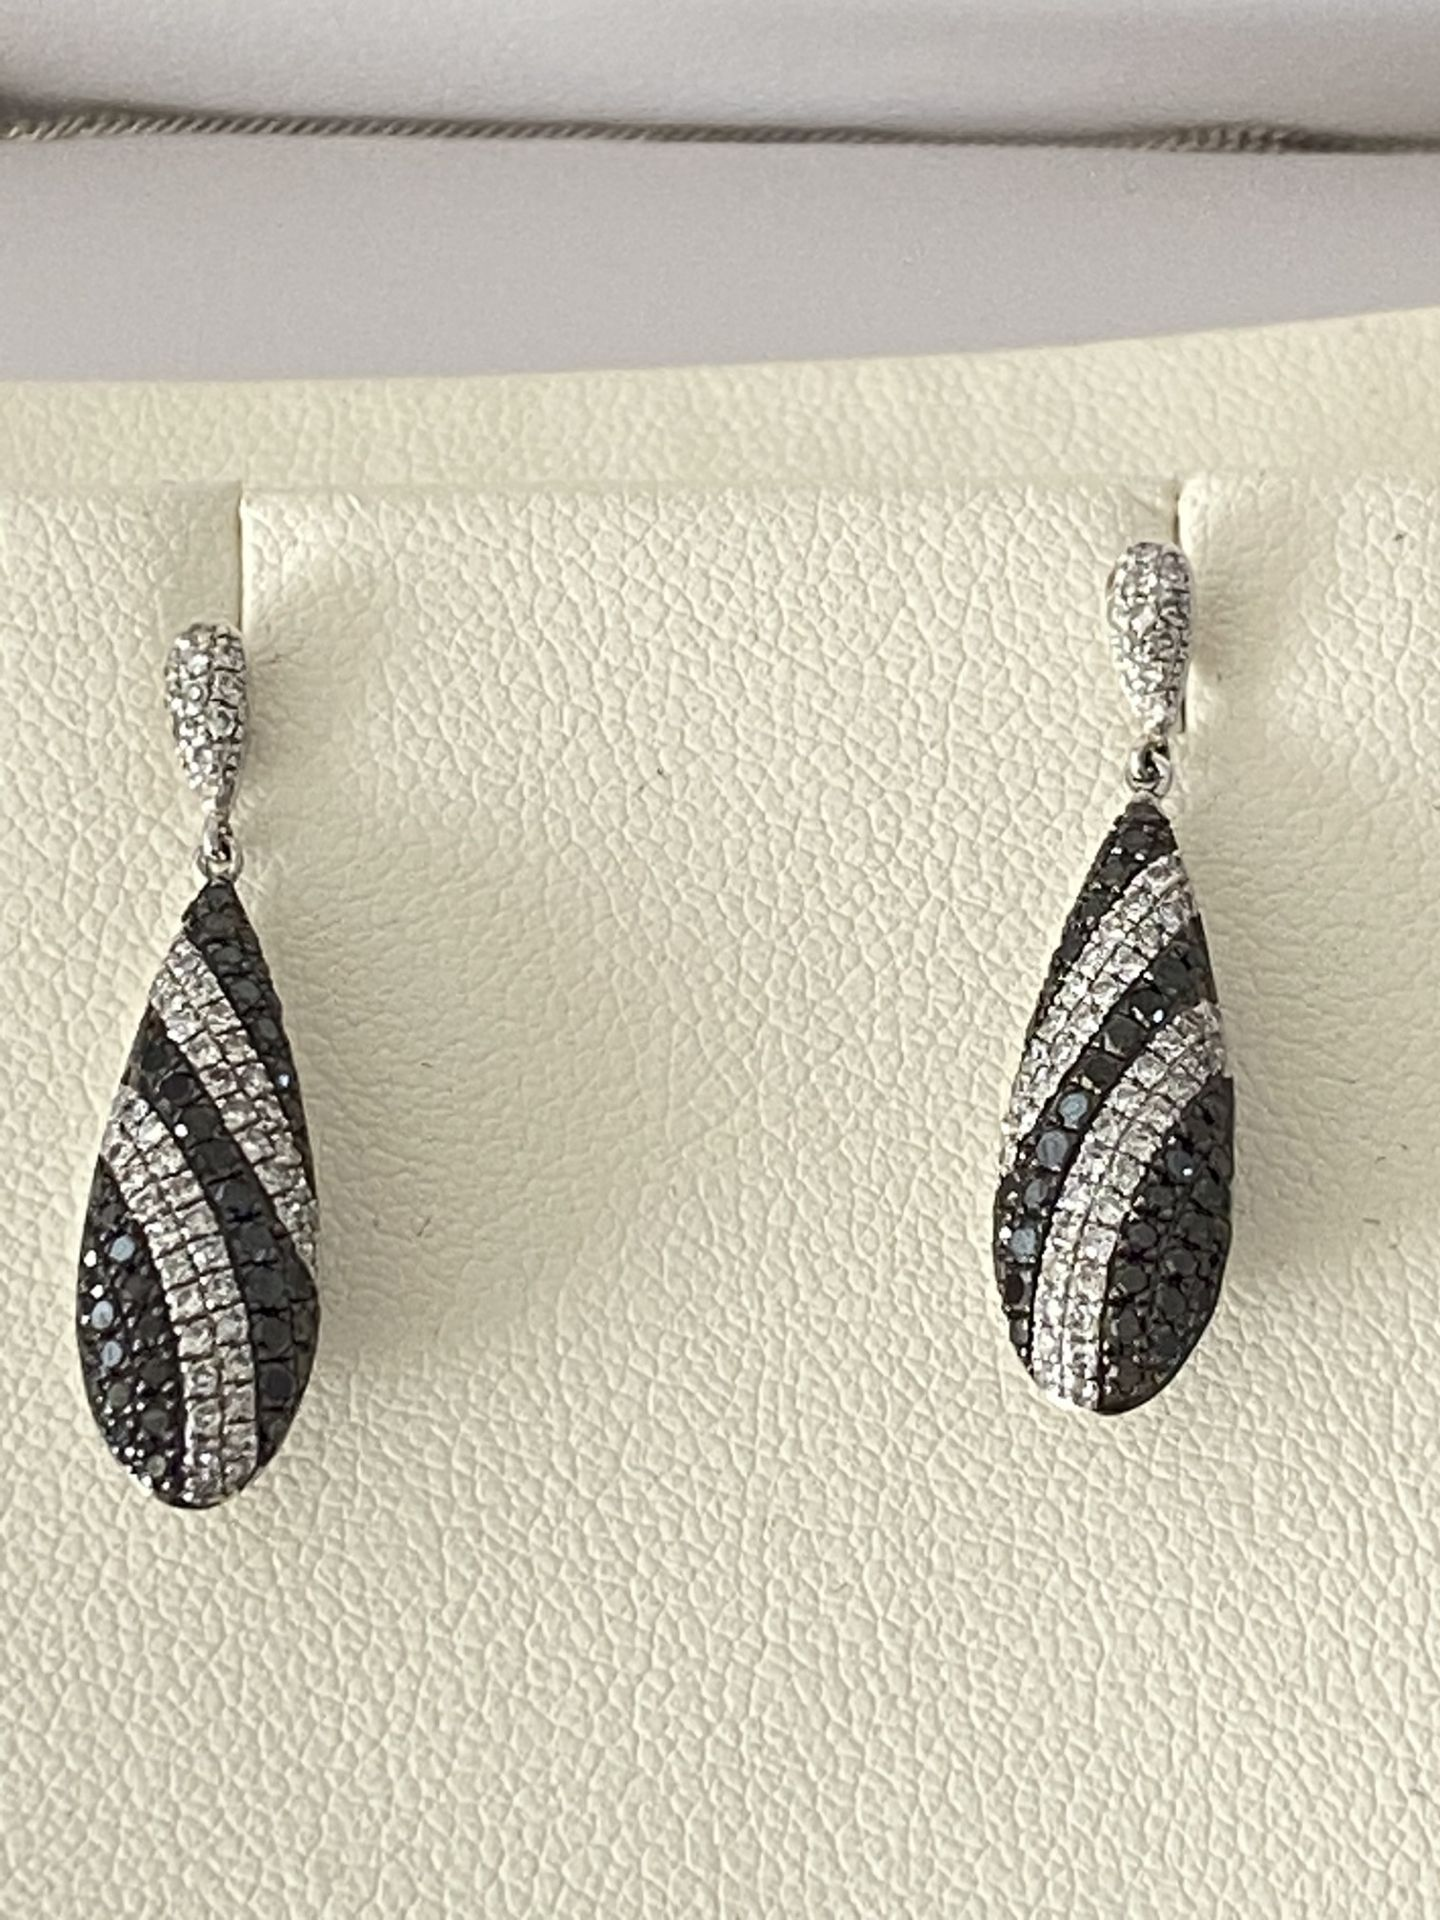 9ct GOLD 1.50ct BLACK & WHITE DIAMOND DROP EARRINGS WITH MATCHING PENDANT - Image 3 of 5